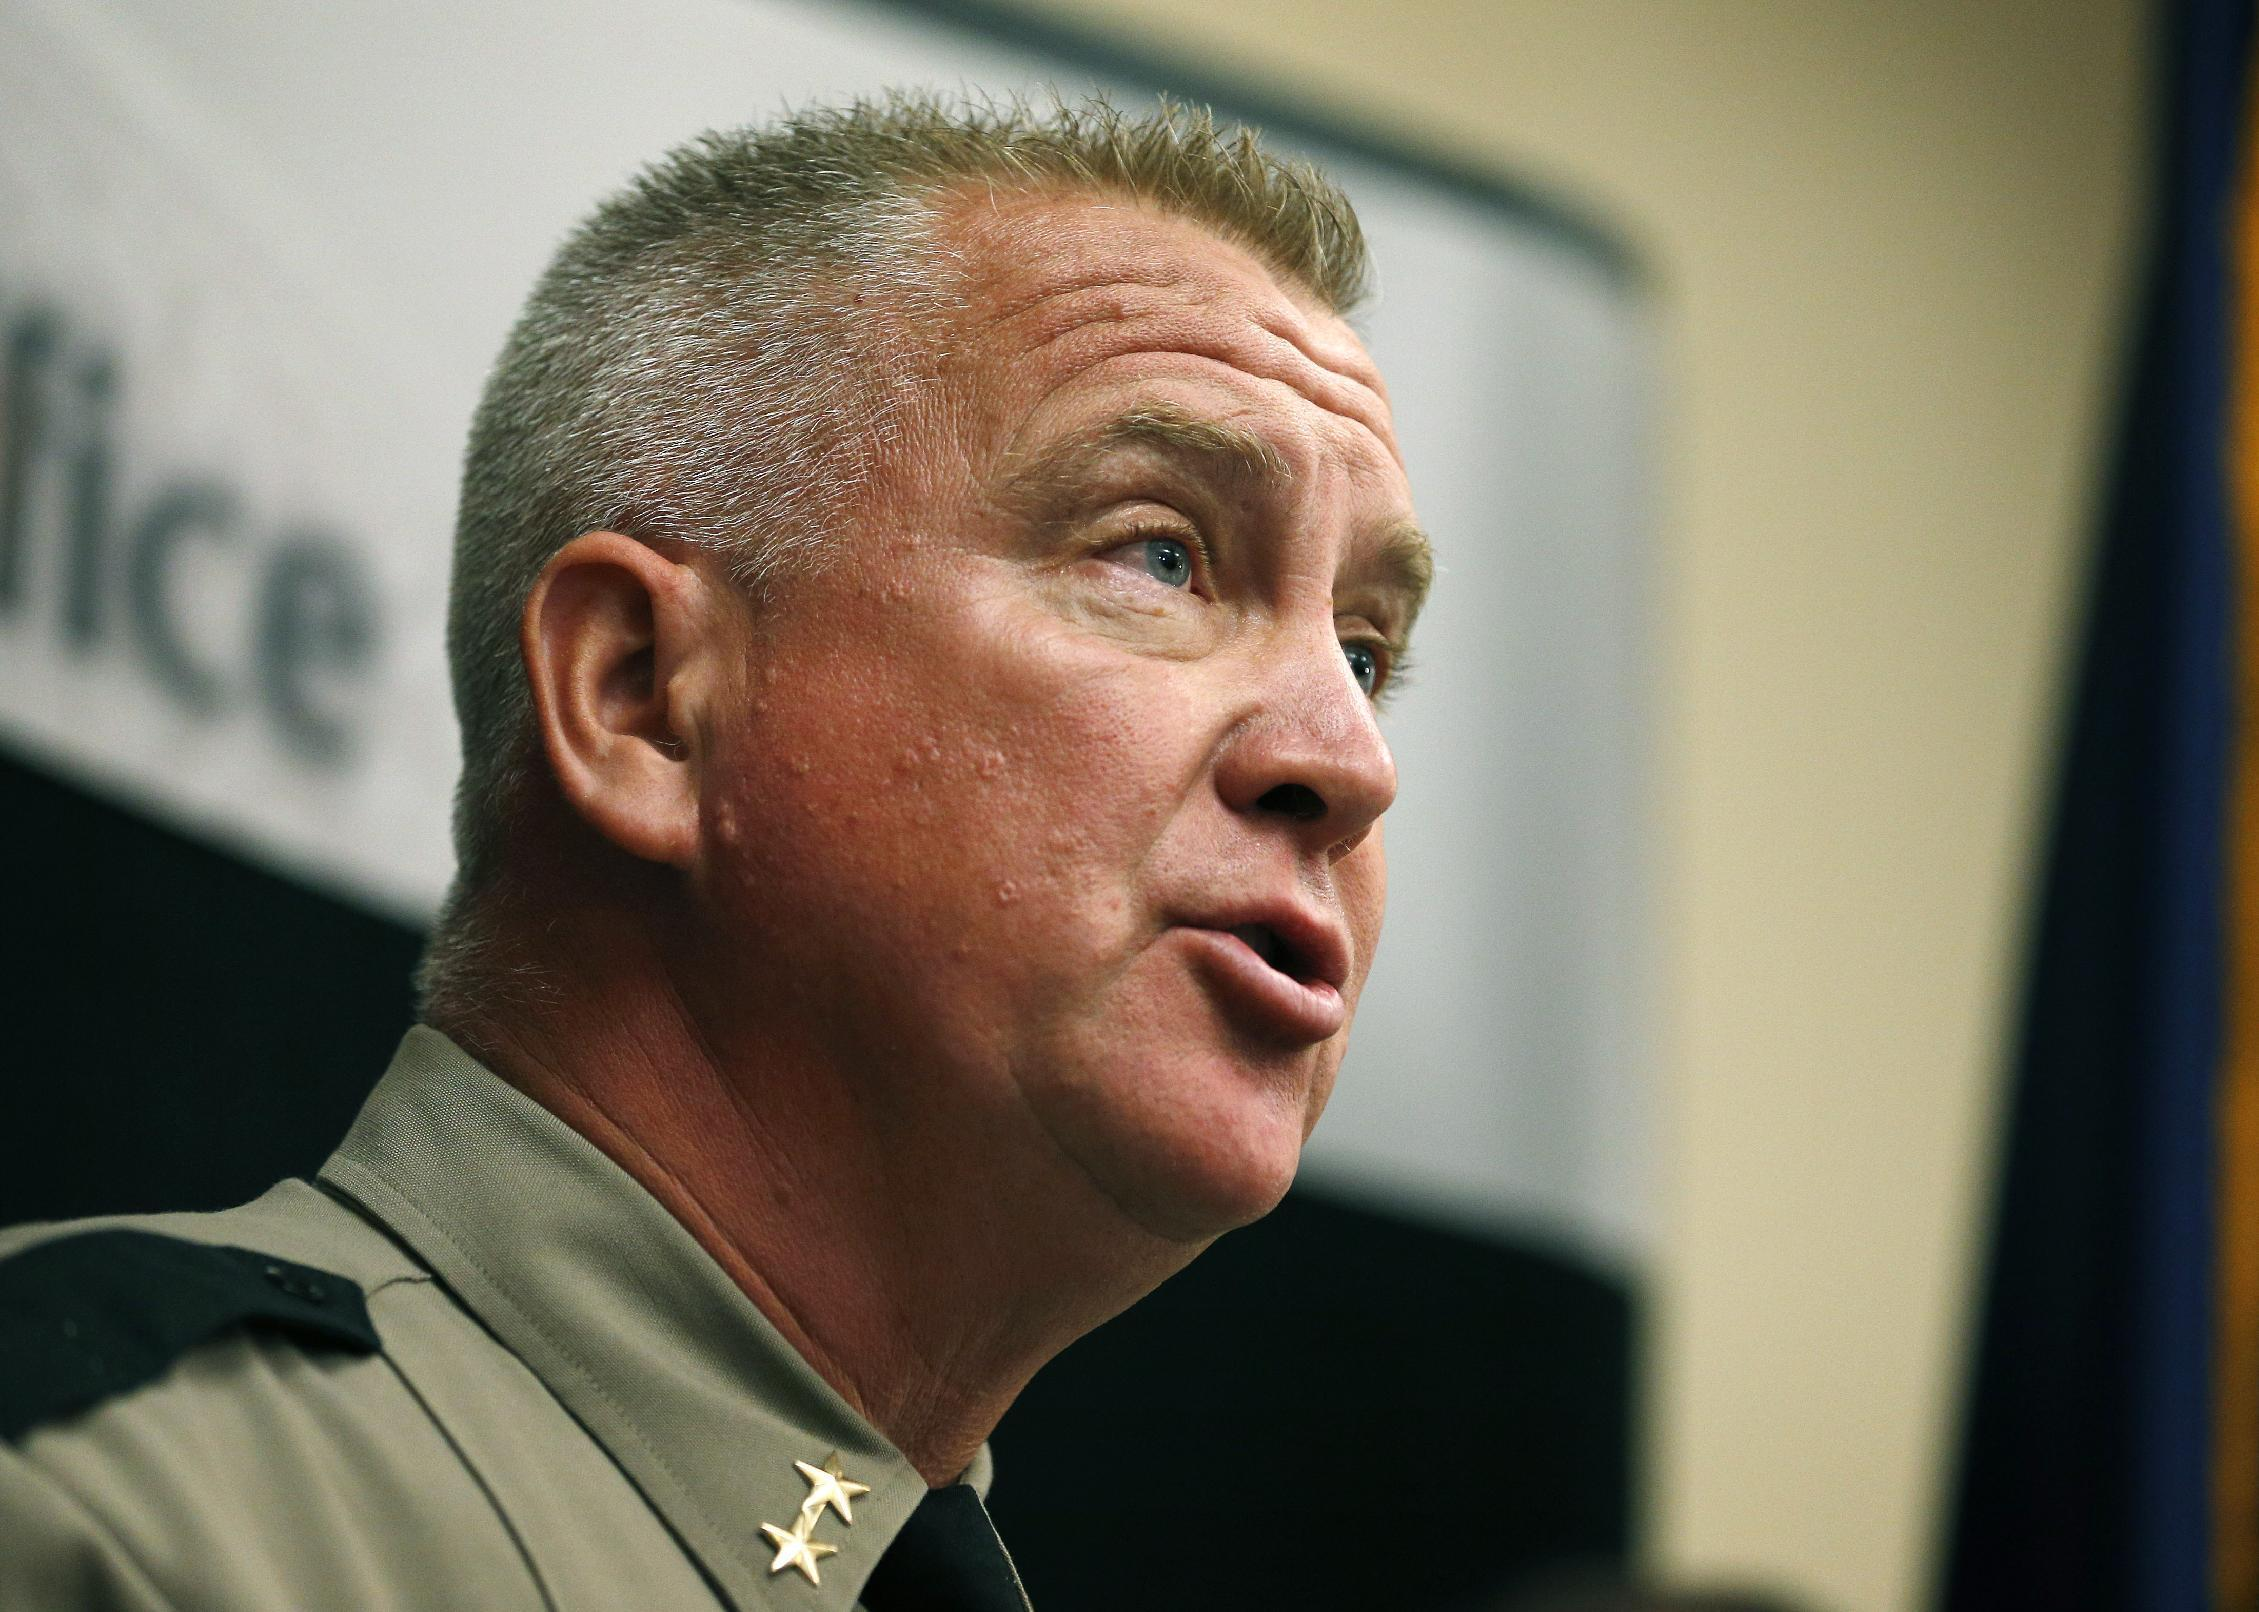 U.S. and Oregon sheriffs' associations support John Hanlin amid gun control, conspiracy theory controversy